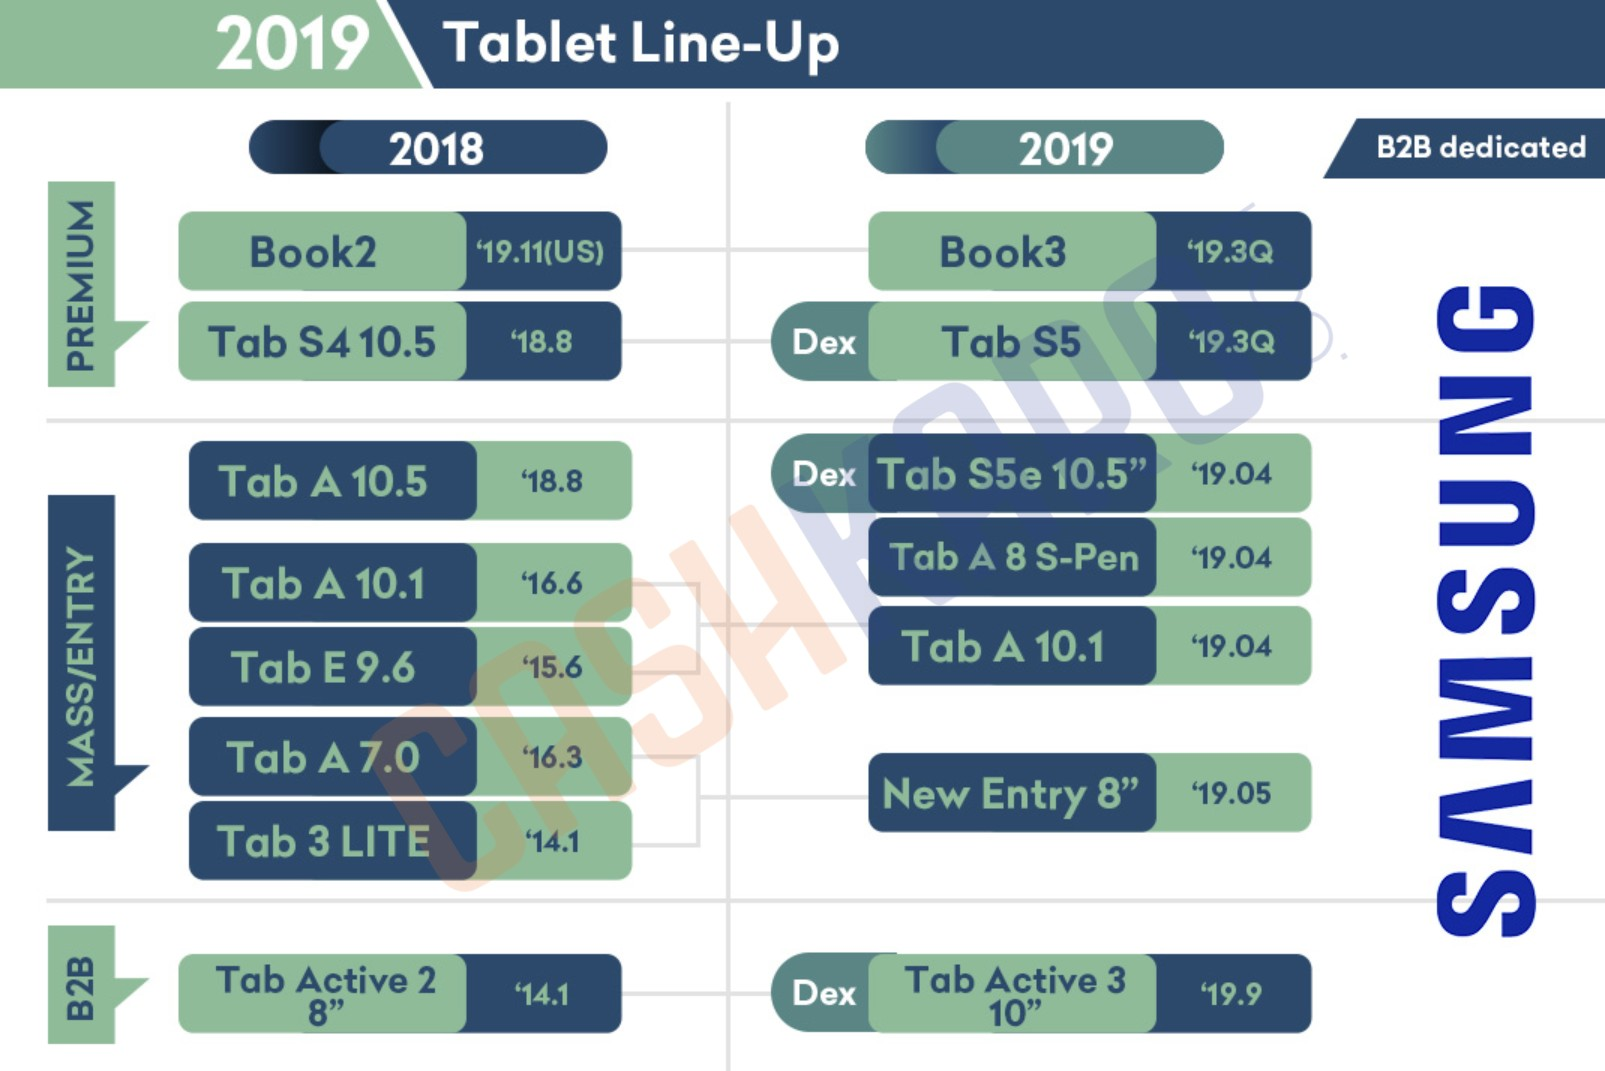 RIP Galaxy Tab S5: Samsung Reportedly Jumping to Galaxy Tab S6